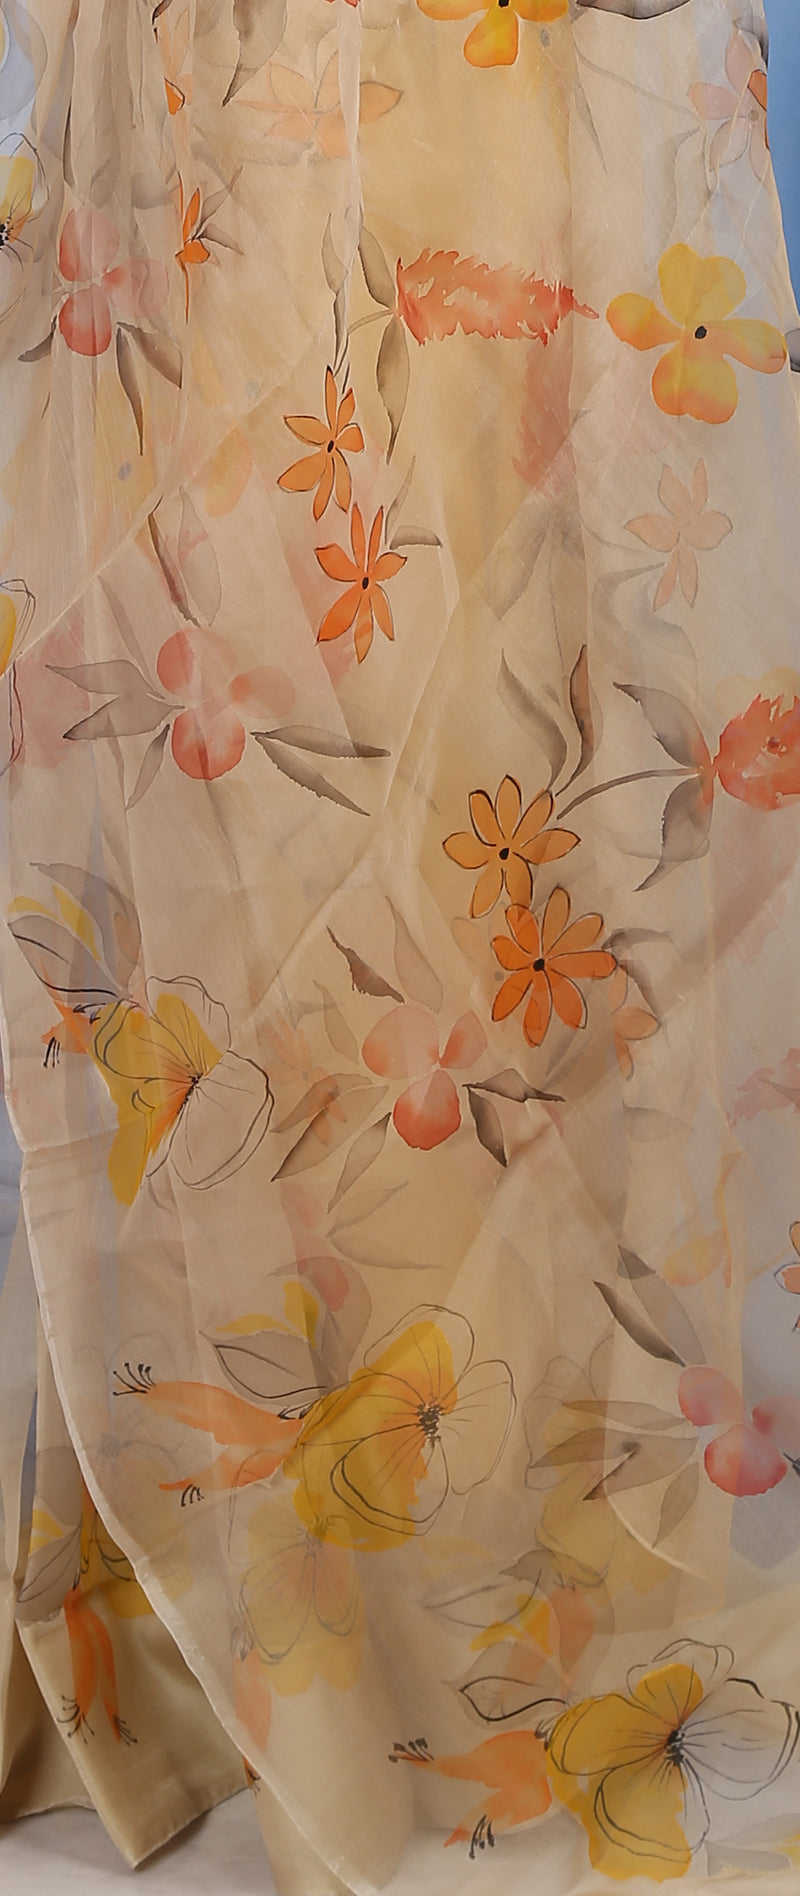 Orange Yellow Magnolia on Pastel Cream Organza